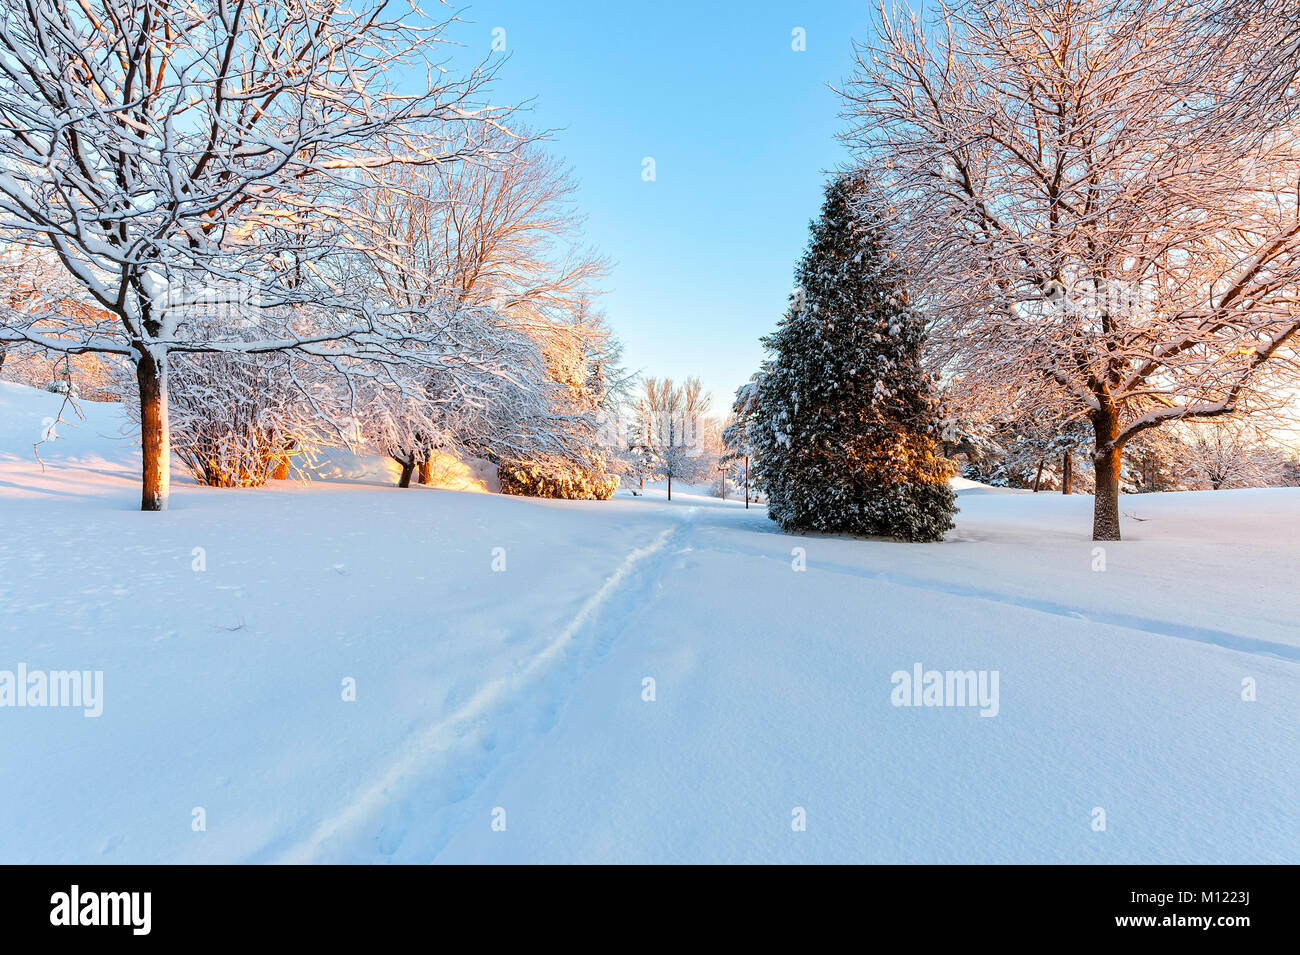 This picture was taken at dawn in Bell park,Sudbury, Ontaio, on Christmas morning after a fresh snowfall - Stock Image